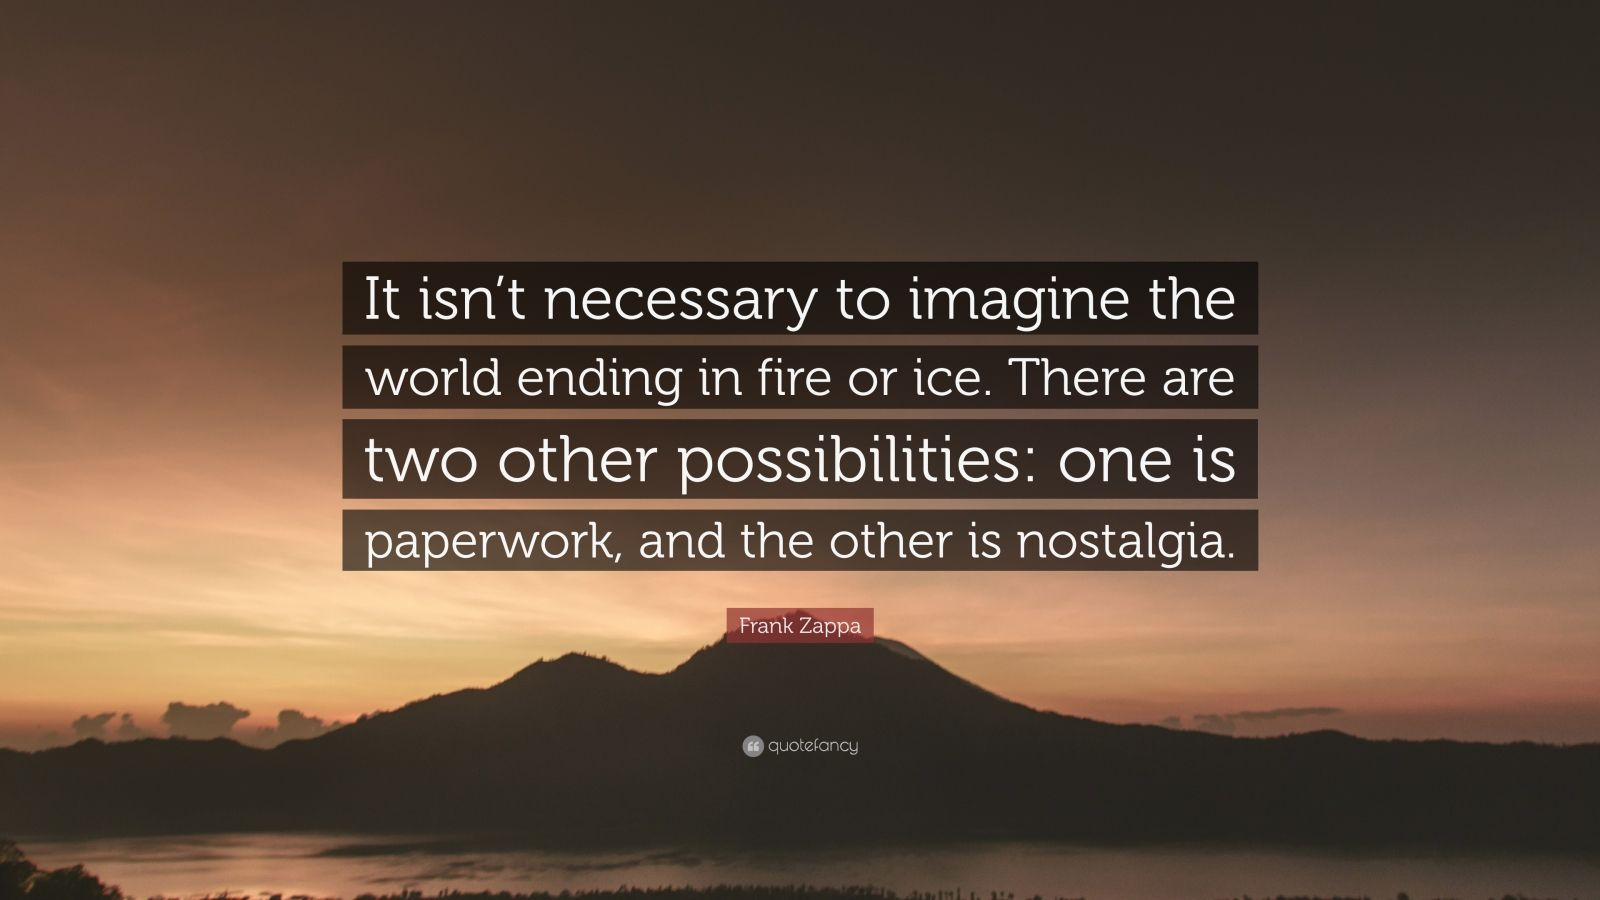 """Frank Zappa Quote: """"It isn't necessary to imagine the world ending in fire or ice. There are two other possibilities: one is paperwork, and the other is nostalgia."""""""